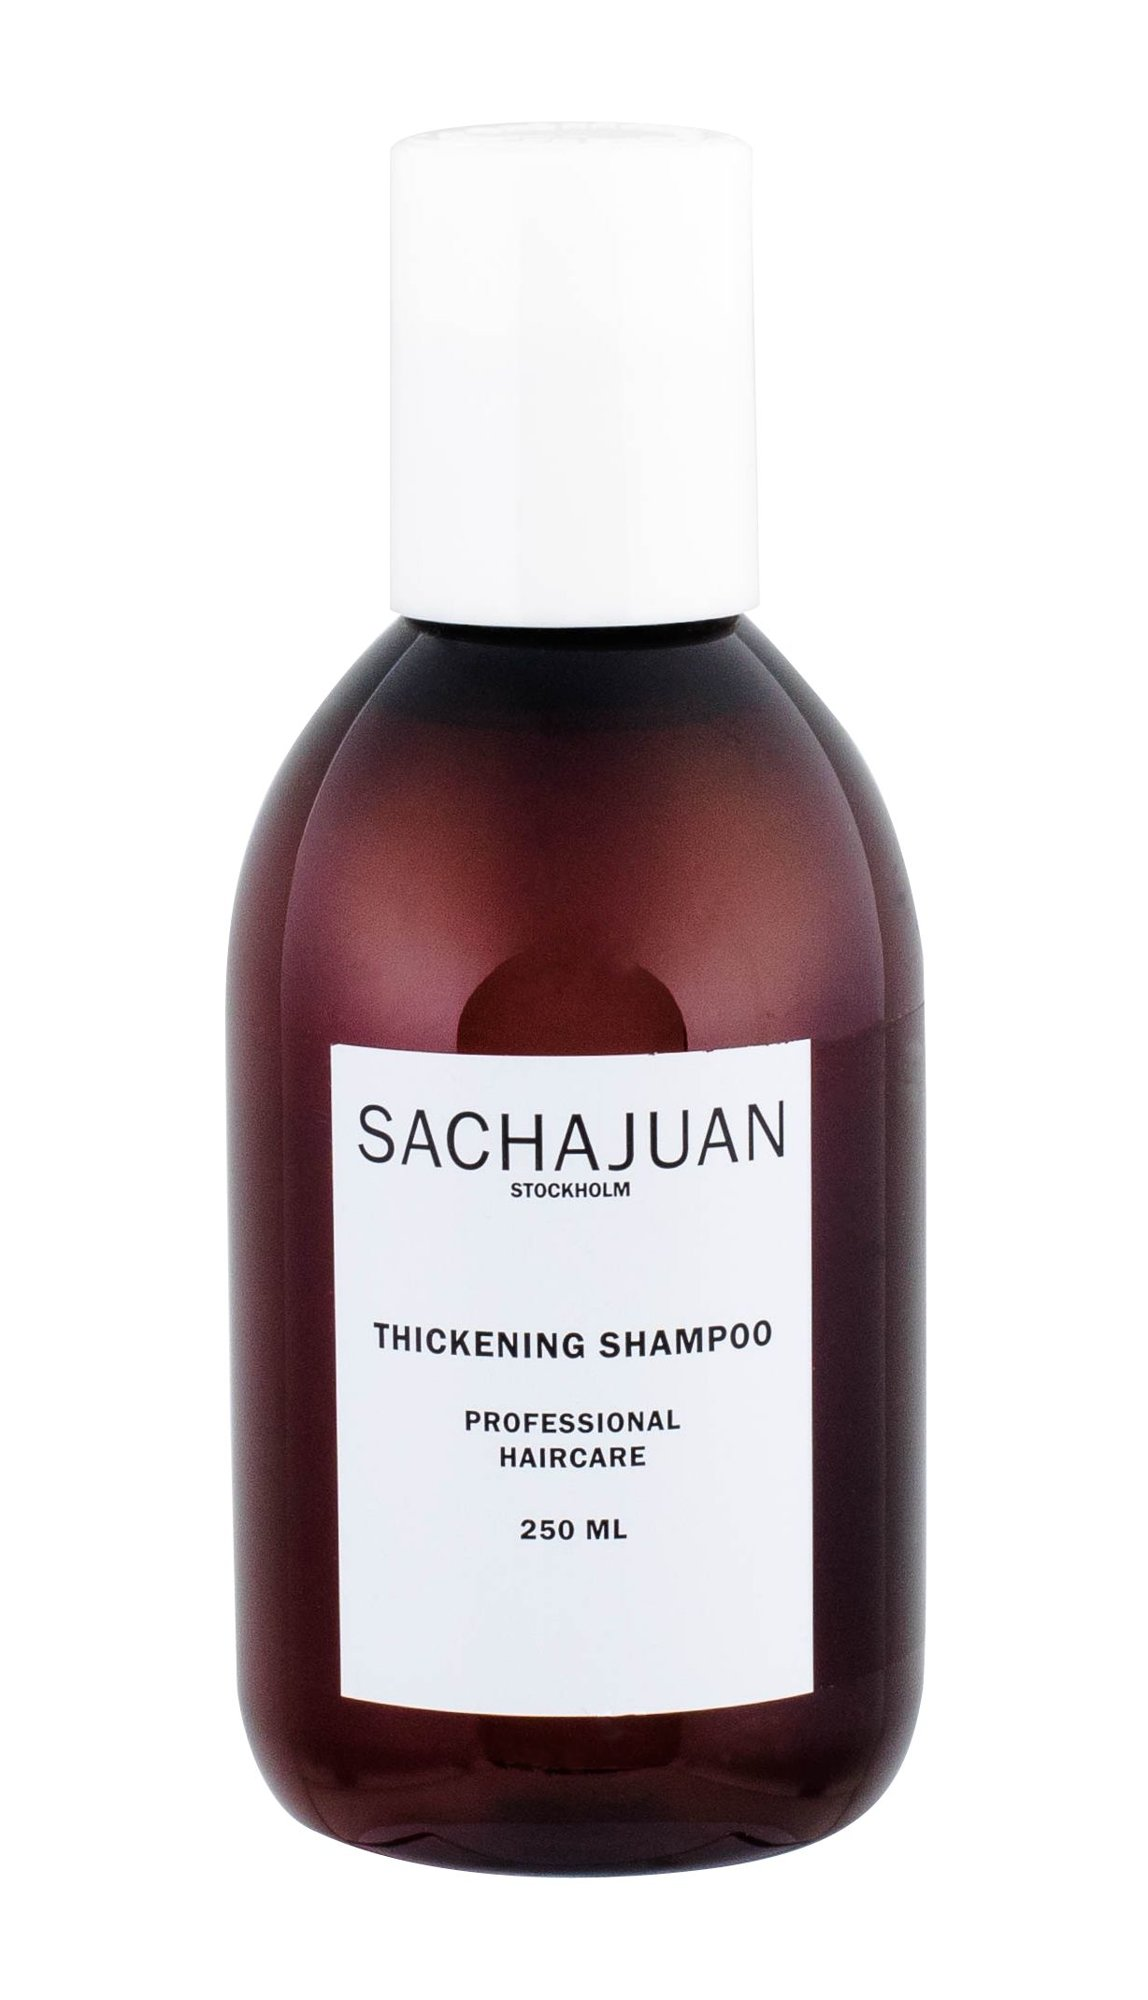 Sachajuan Cleanse & Care Shampoo 250ml  Thickening